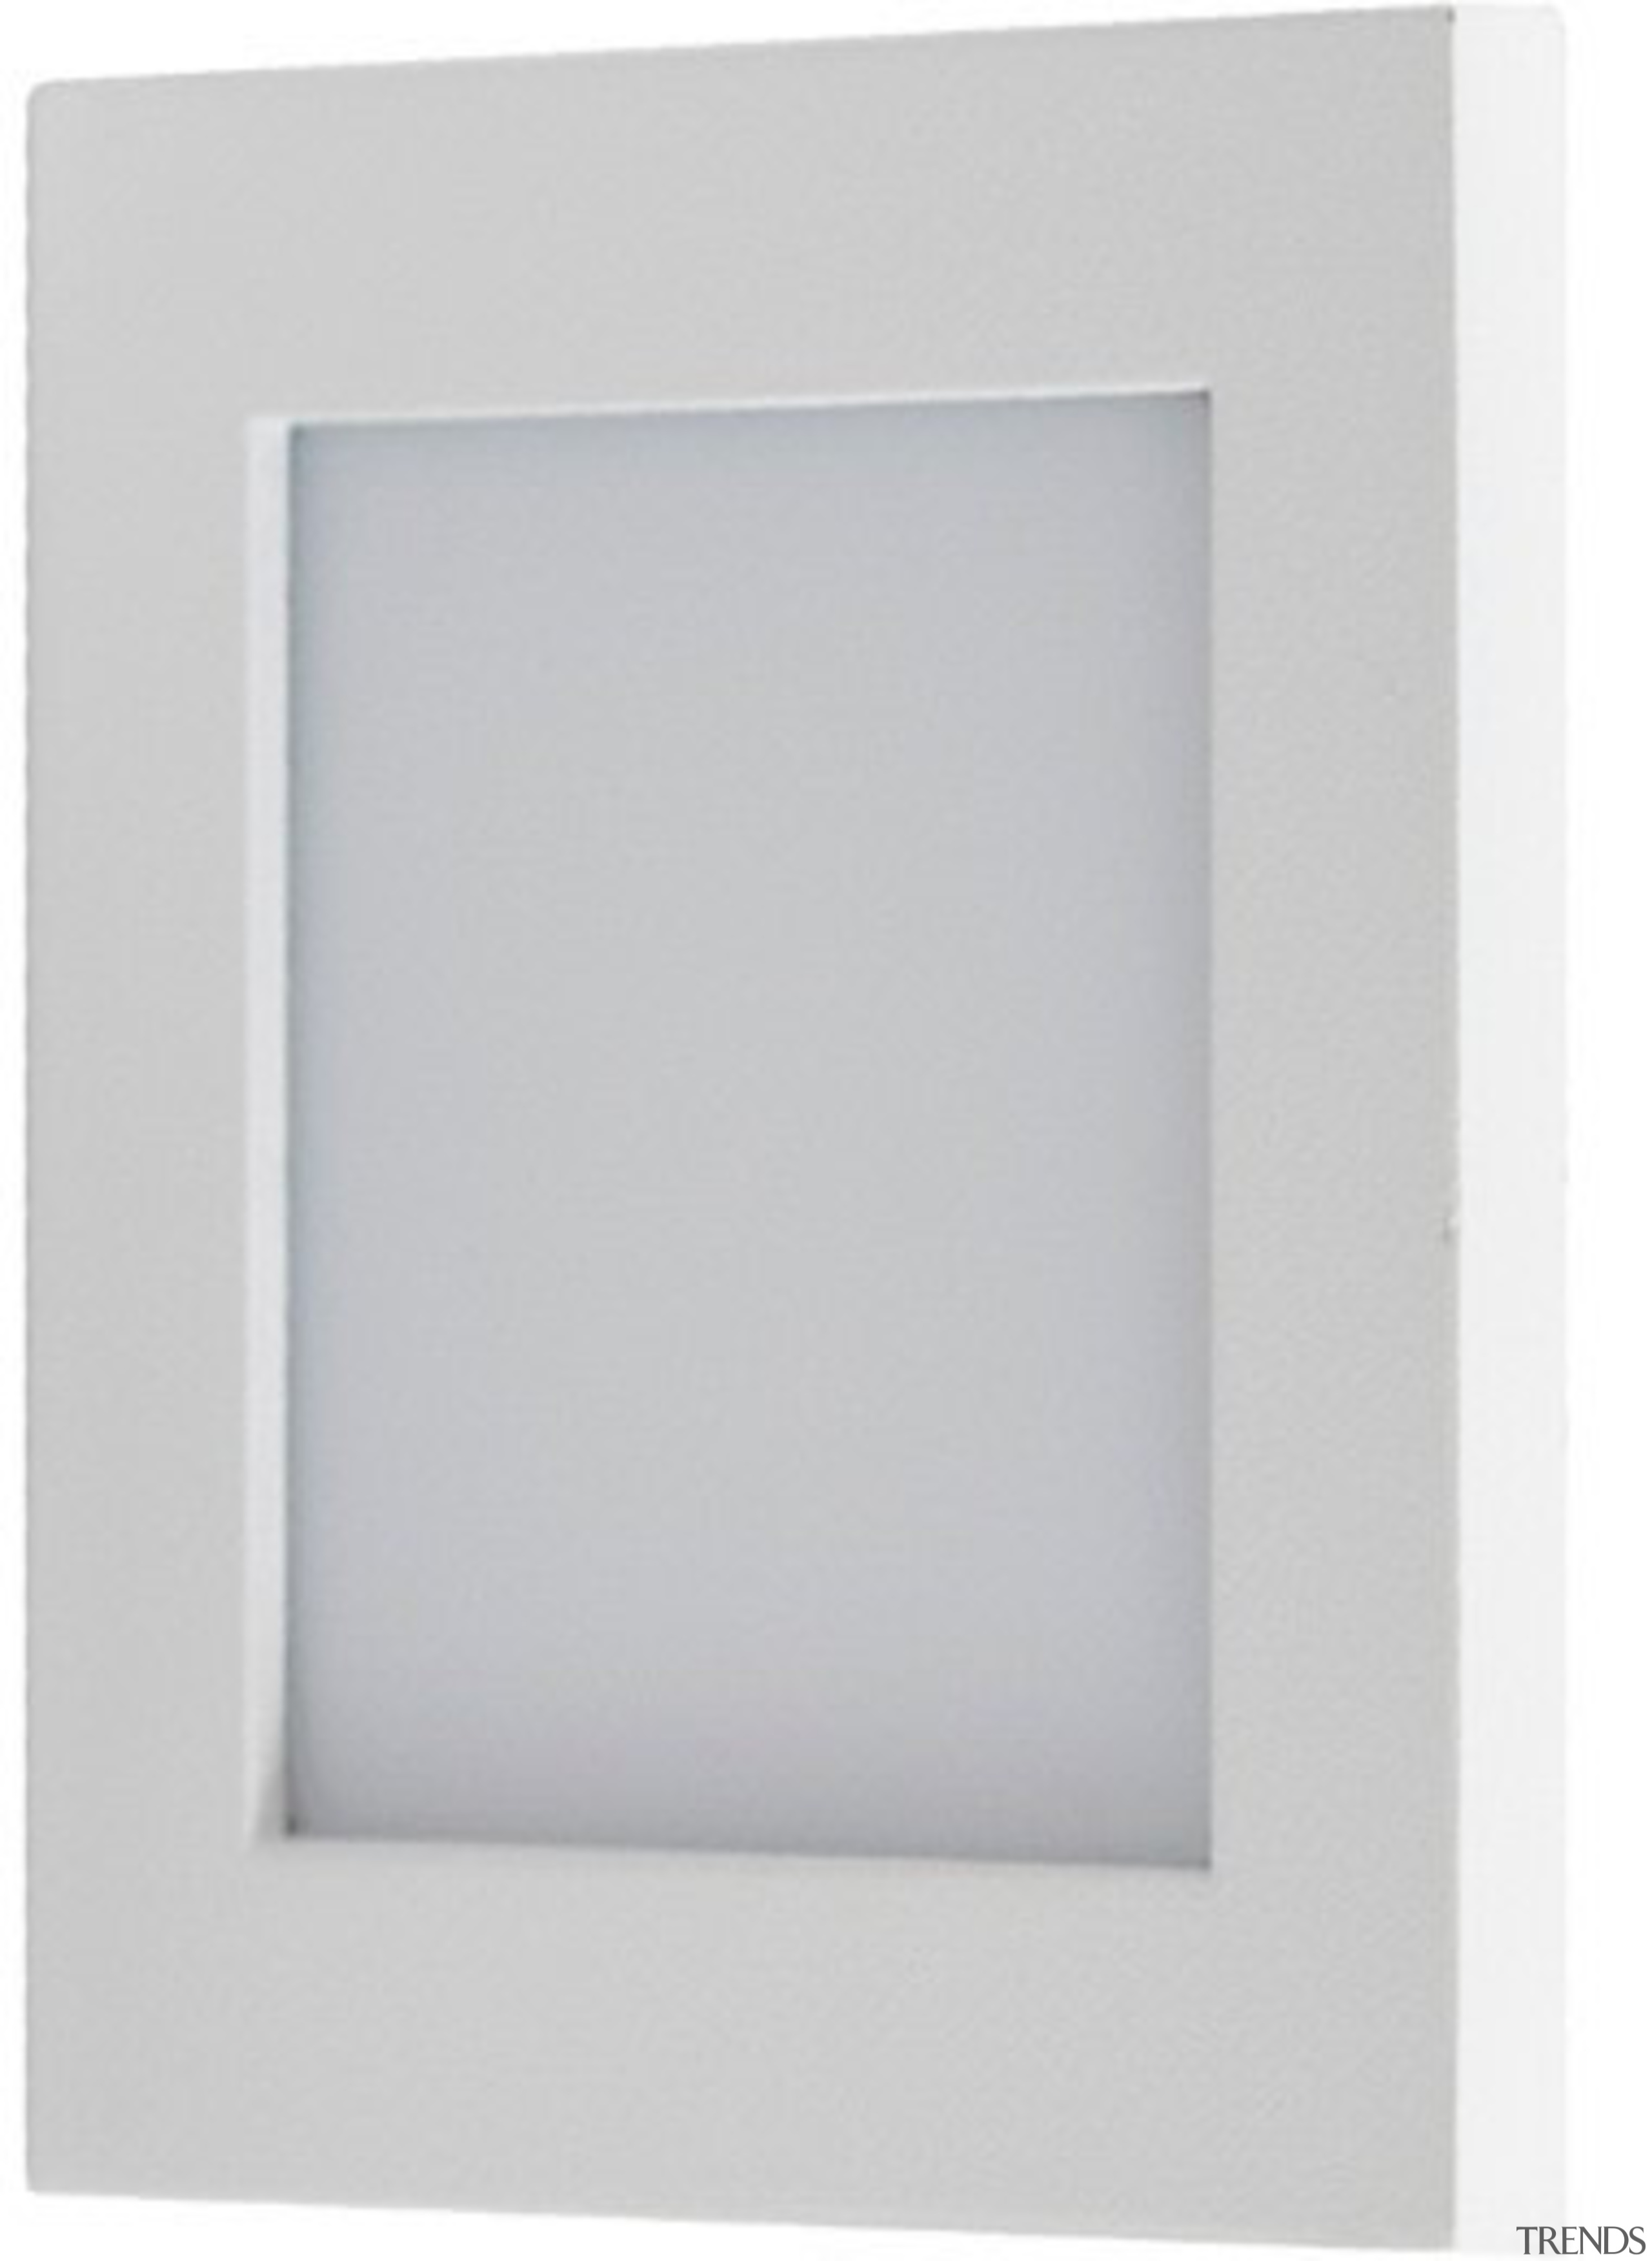 FeaturesThe Dias is a square recessed wall light light, lighting, picture frame, product design, rectangle, white, gray